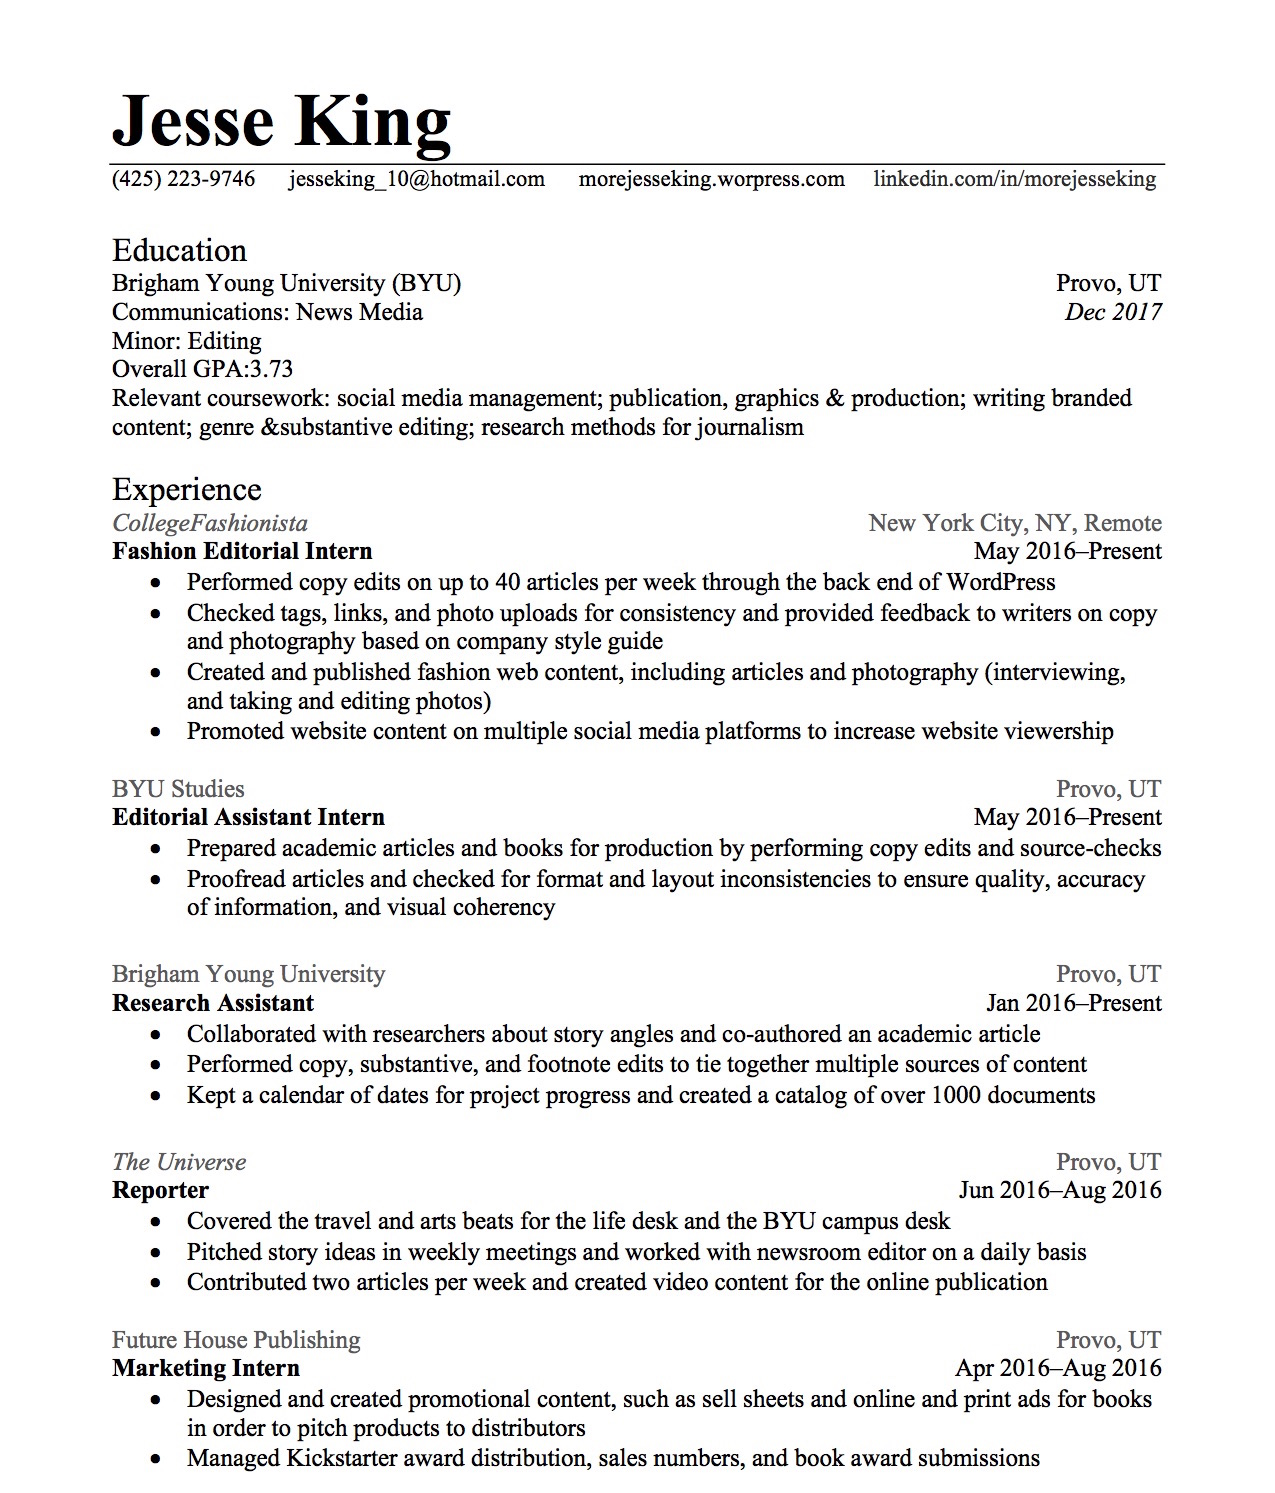 r eacute sum eacute more jesse king below i ve included a reacutesumeacute exhibiting my experience in writing editing and publishing for a more comprehensive reacutesumeacute my linkedin profile